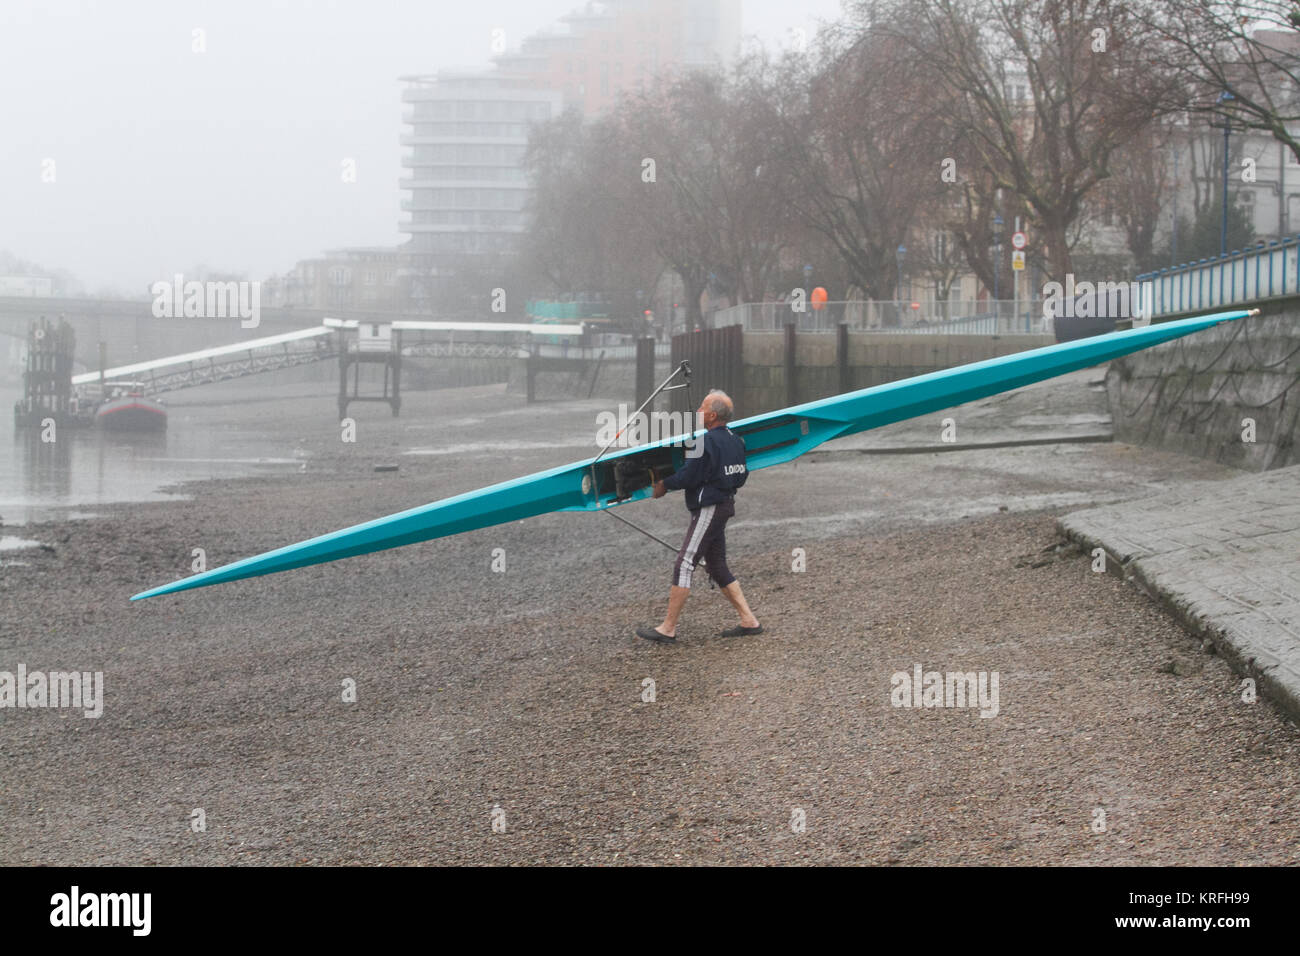 London, UK. 20th Dec, 2017. A rower takes to the water on the River Thames in Putney on a cold misty morning Credit: Stock Photo